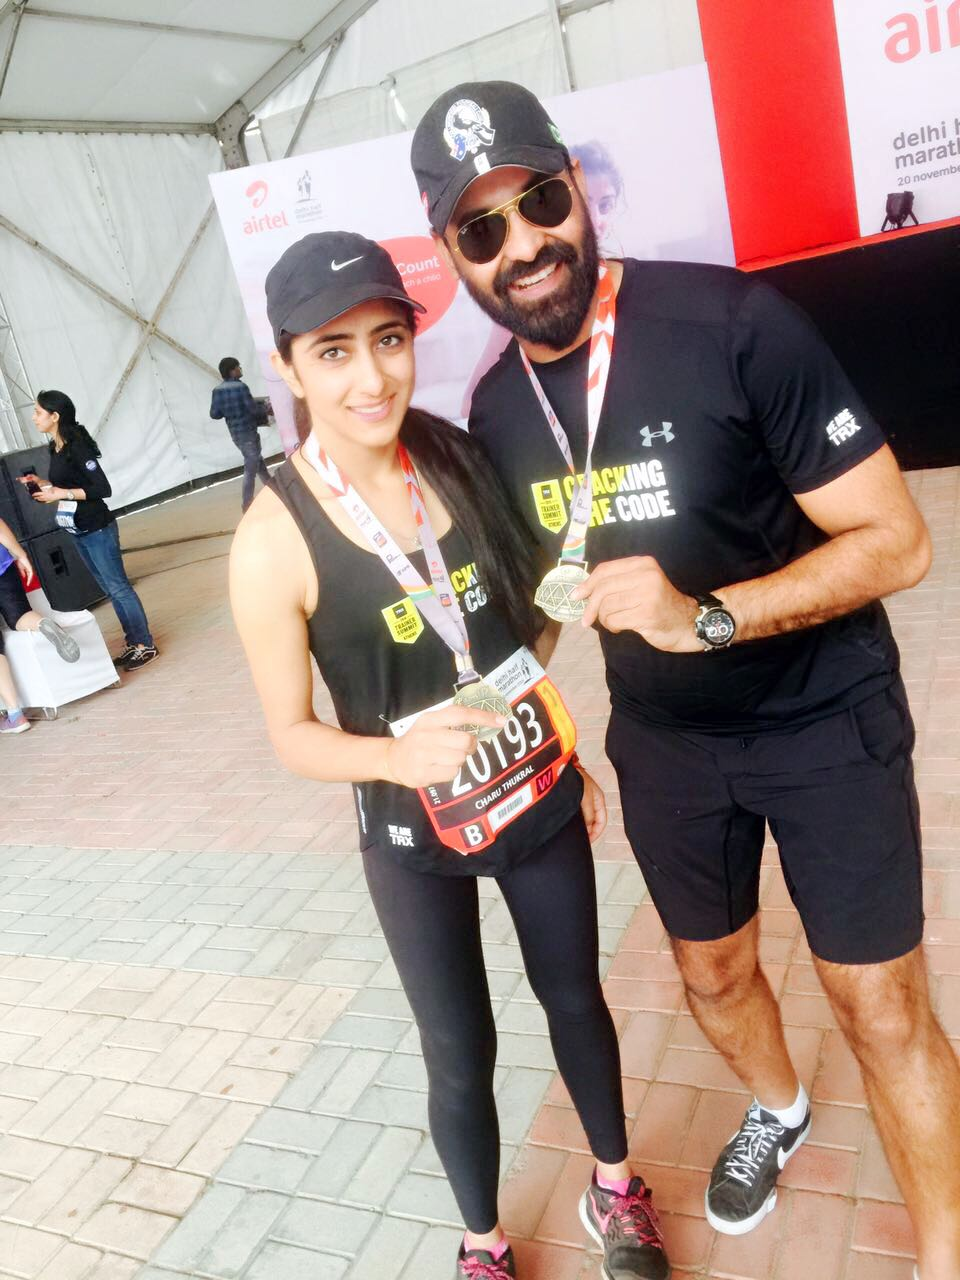 Rajasthan's fastest finisher at ATHM, Charu Thukral. Photo credits- Shethepeople.tv